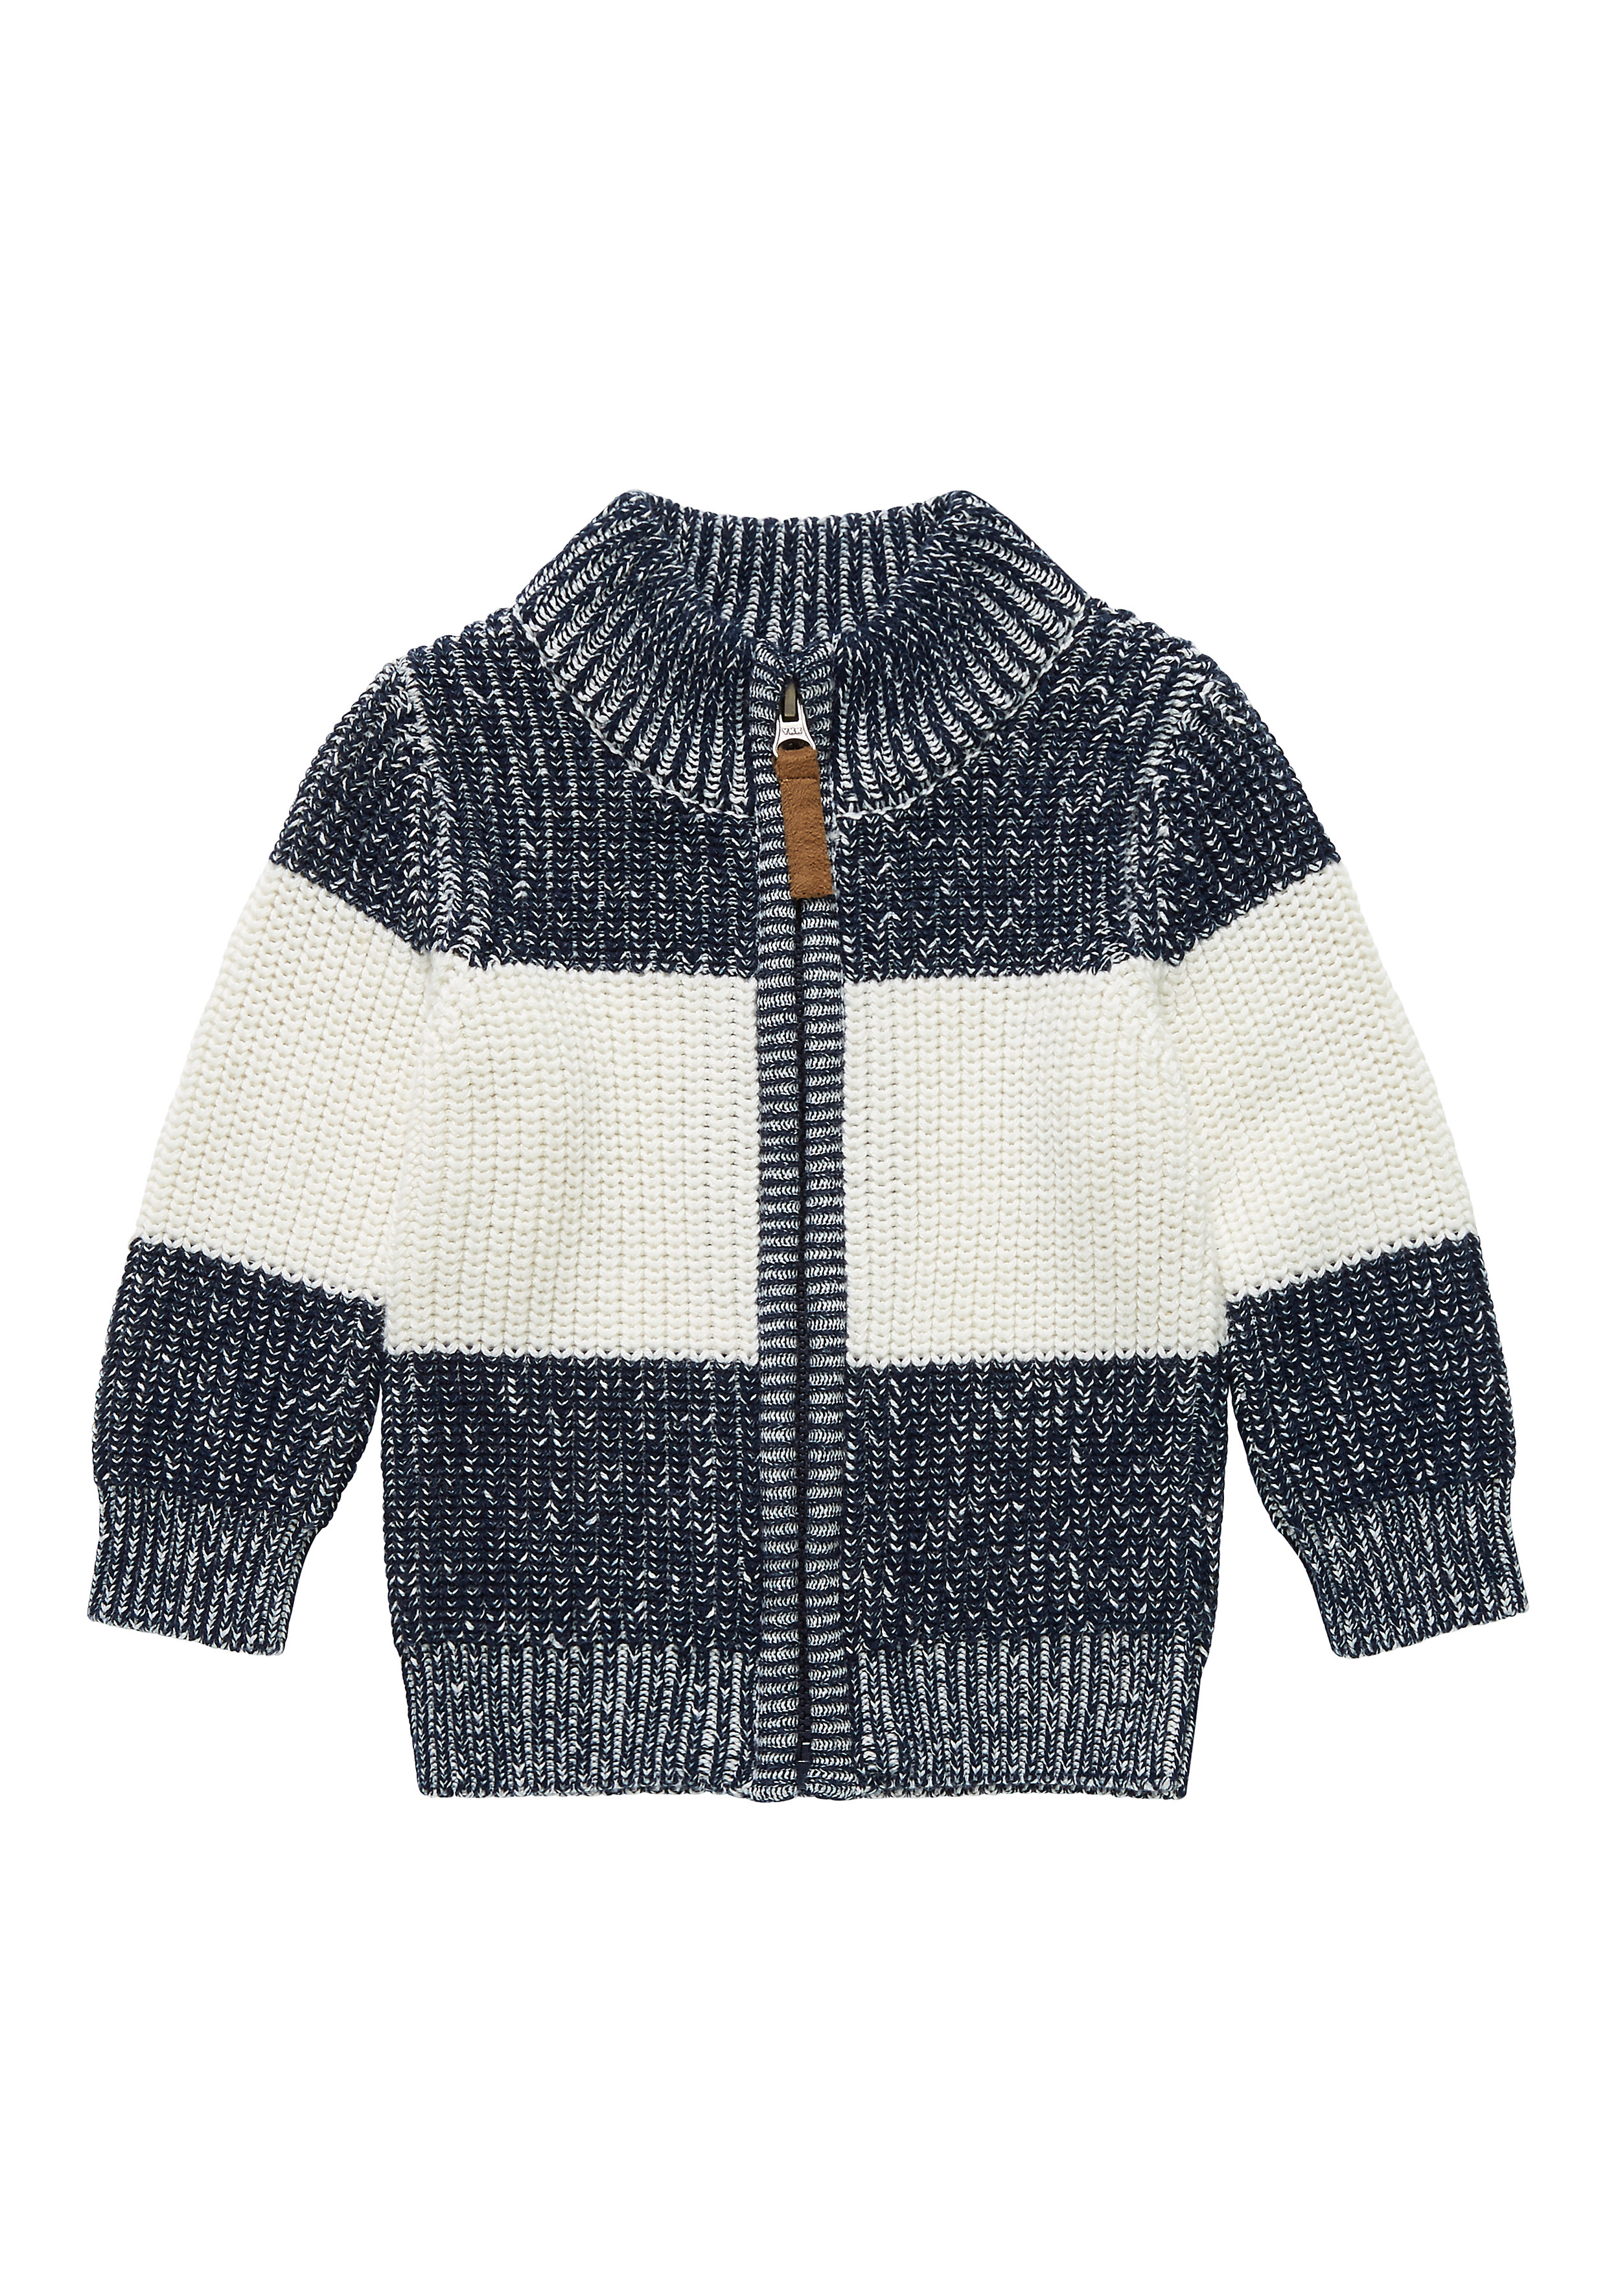 Mothercare   Boys Full Sleeves Cardigan Striped - Multicolor